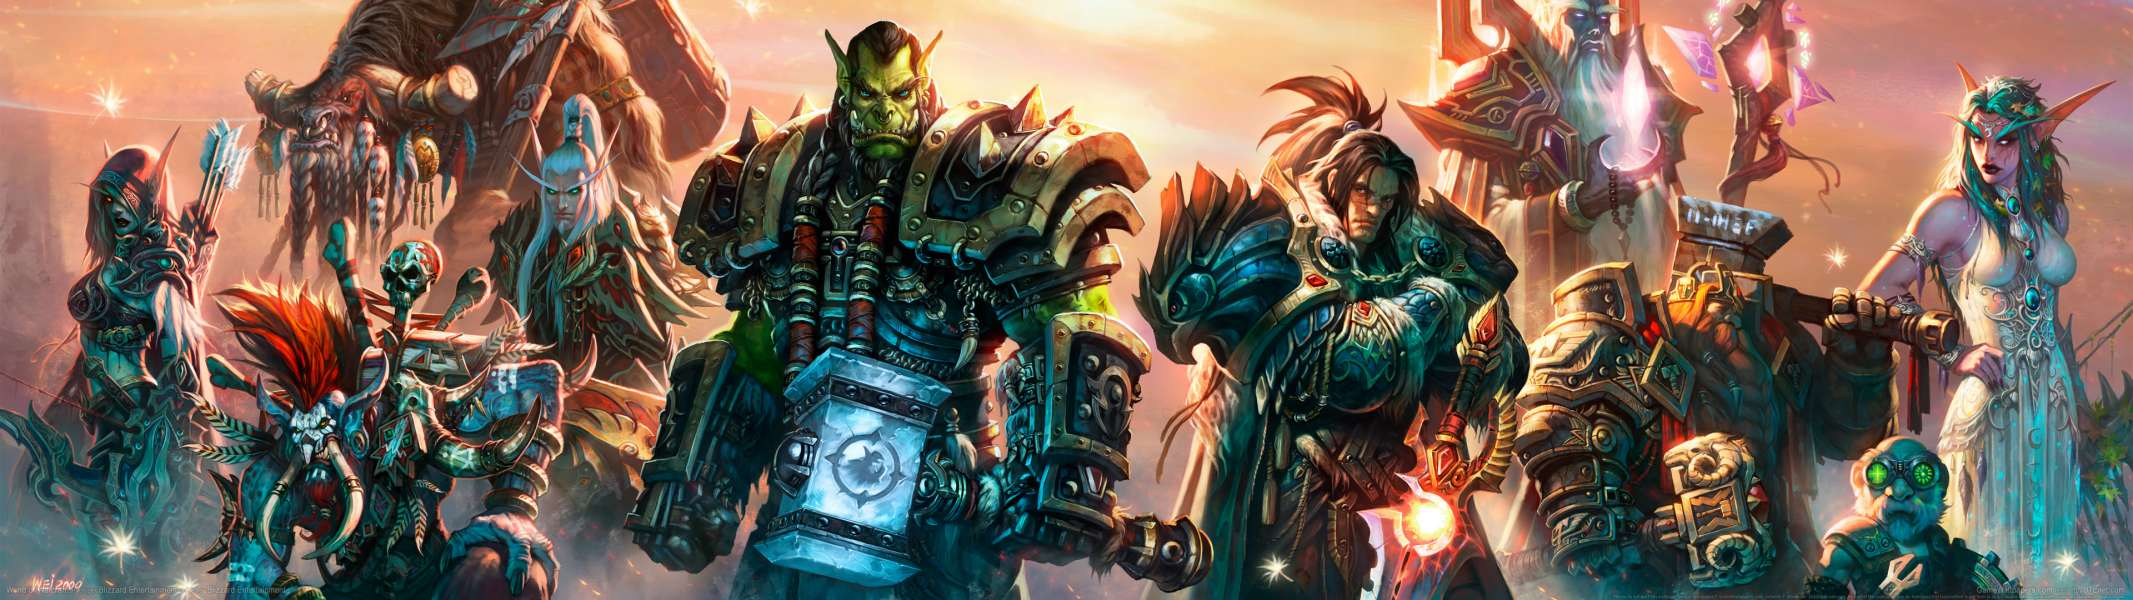 World of Warcraft dual screen wallpaper or background